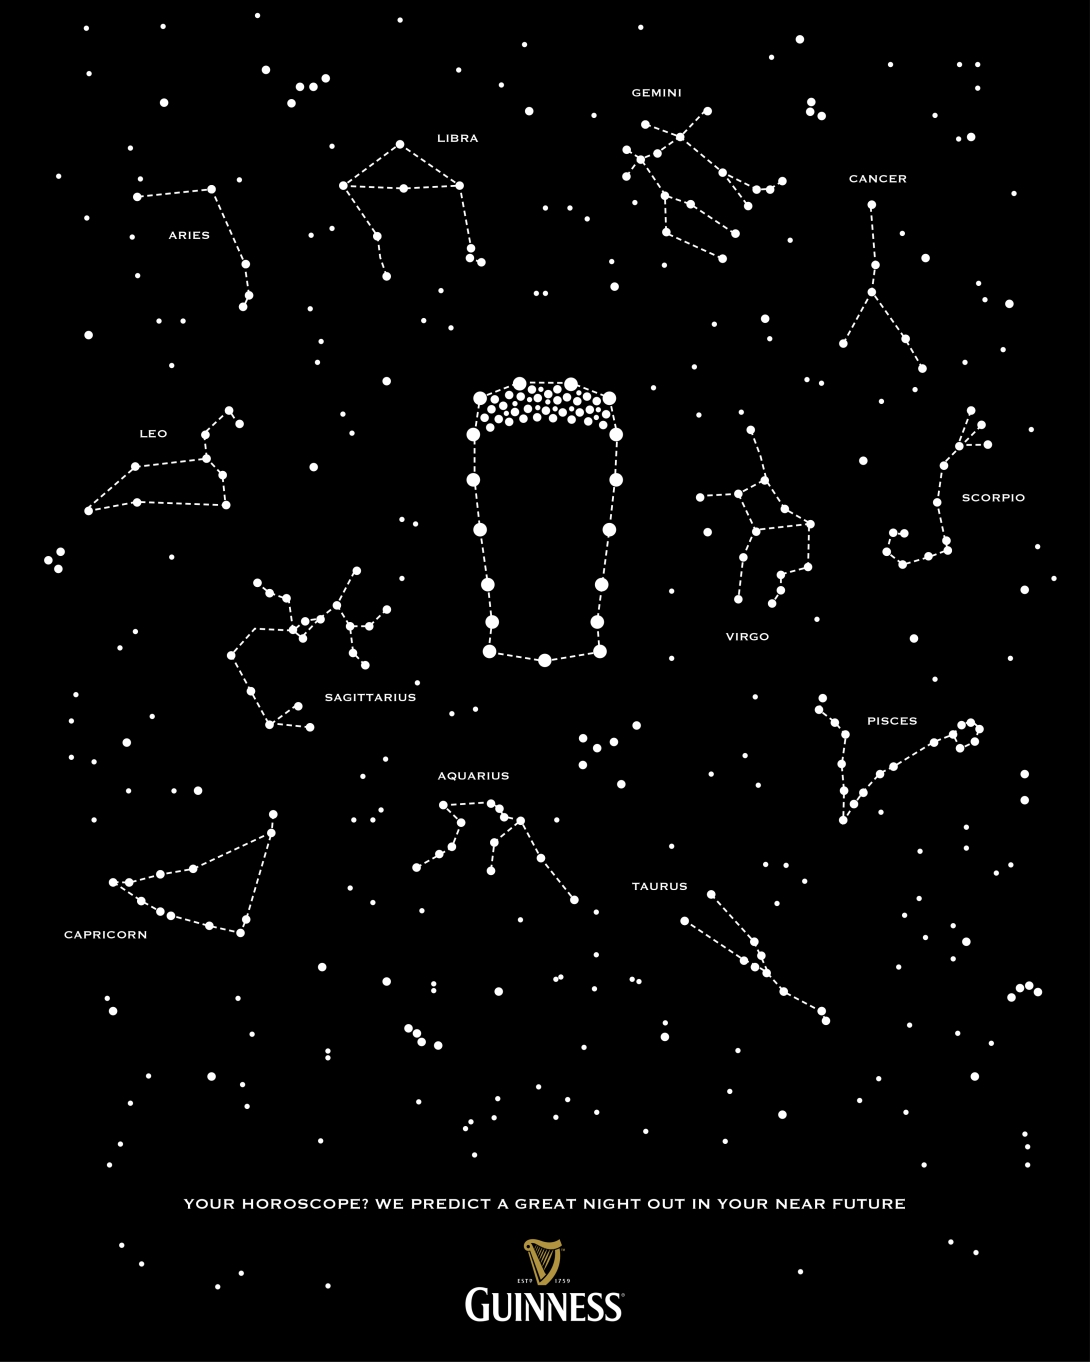 advertising concept for Guinness - horoscope